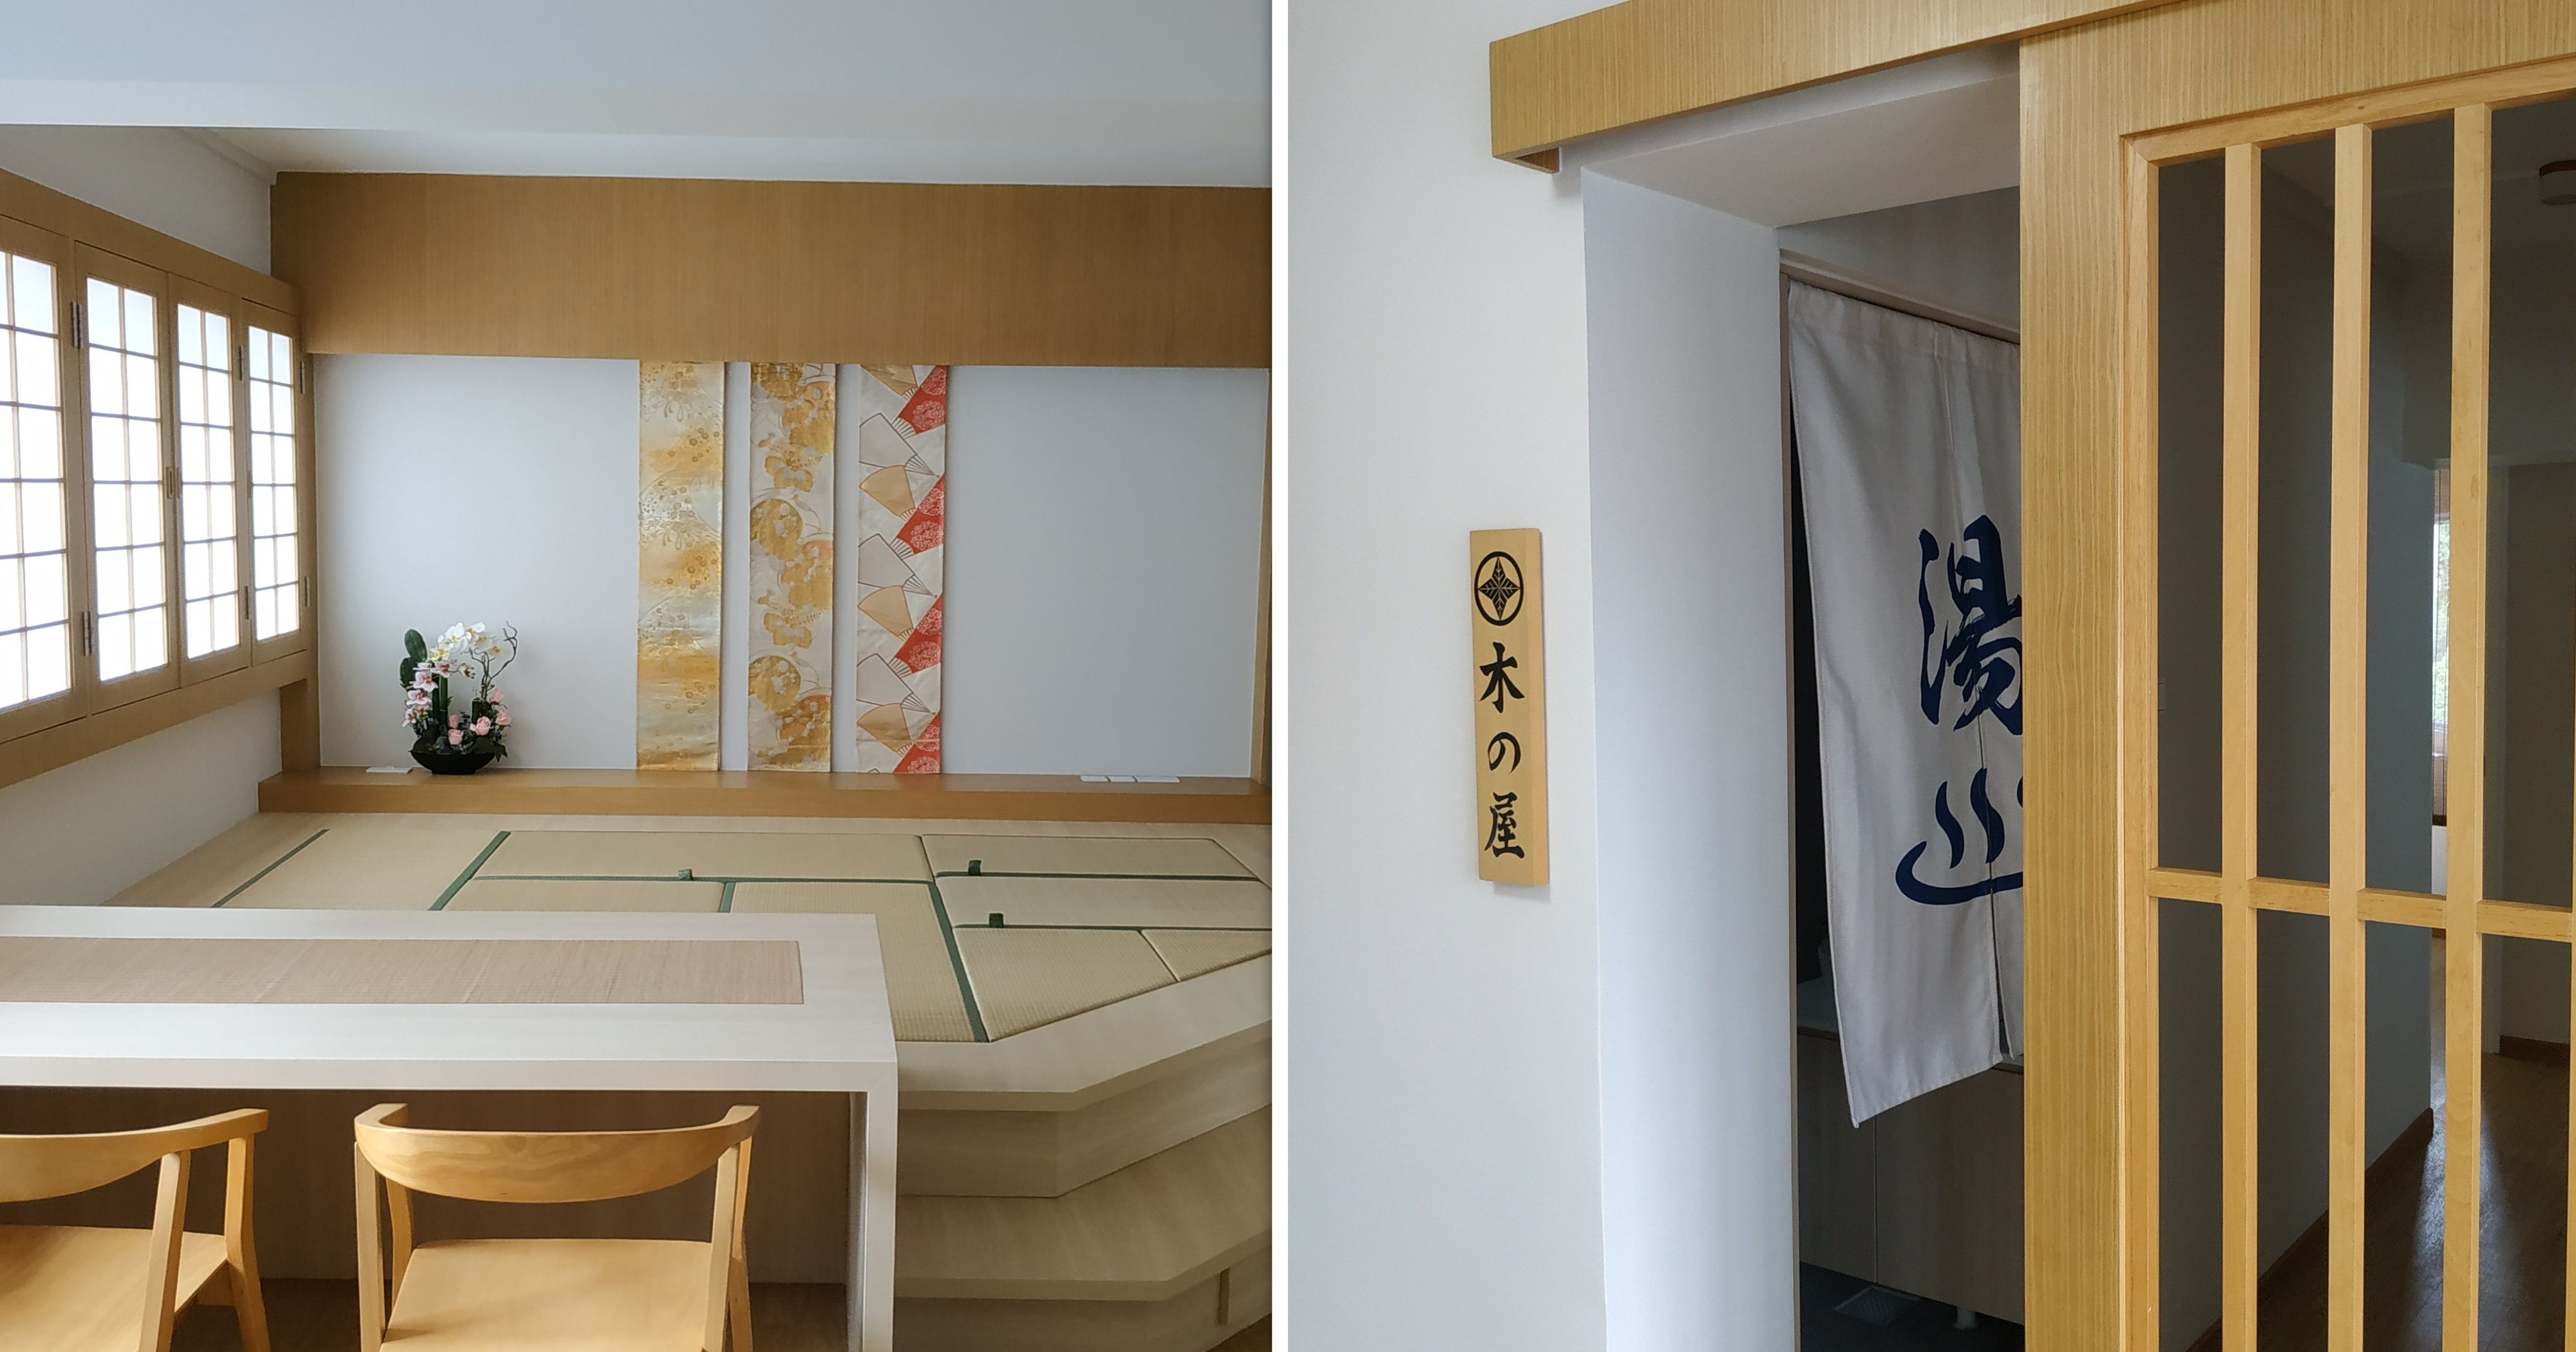 S Pore Couple Turns 4 Room Hdb Flat Into Cosy Kyoto Style Apartment Mothership Sg News From Singapore Asia And Around The World